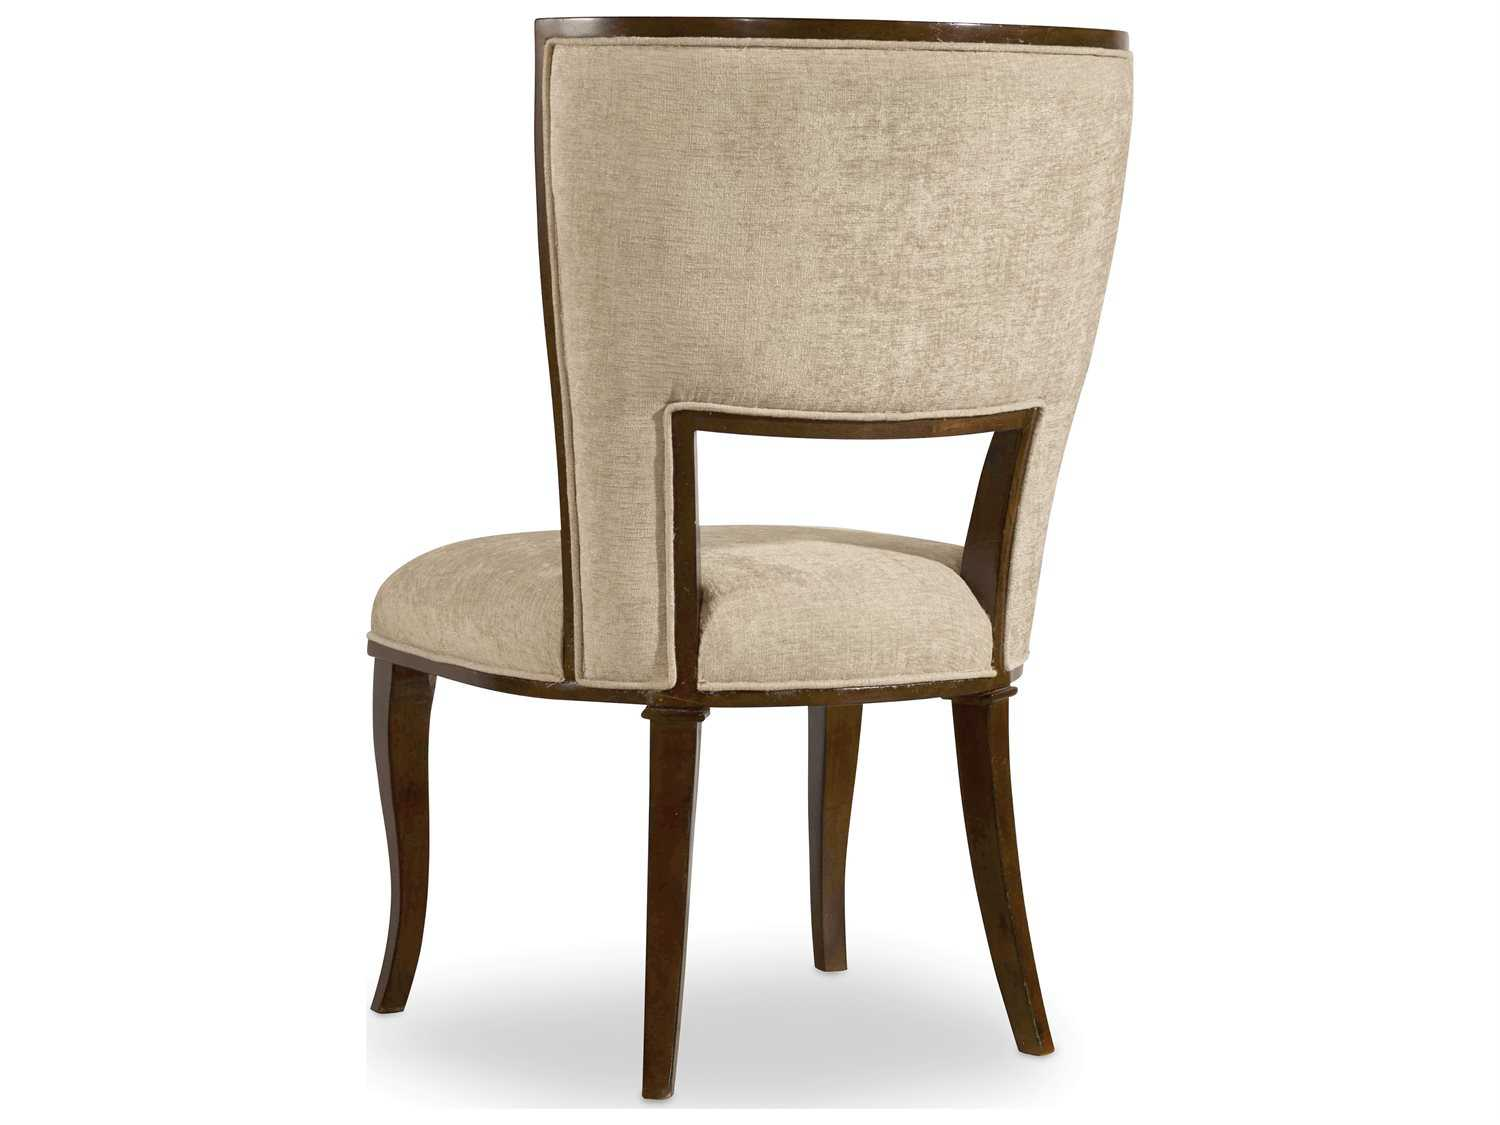 cathedral chairs handicap chair lifts hooker furniture skyline dark cherry dining side